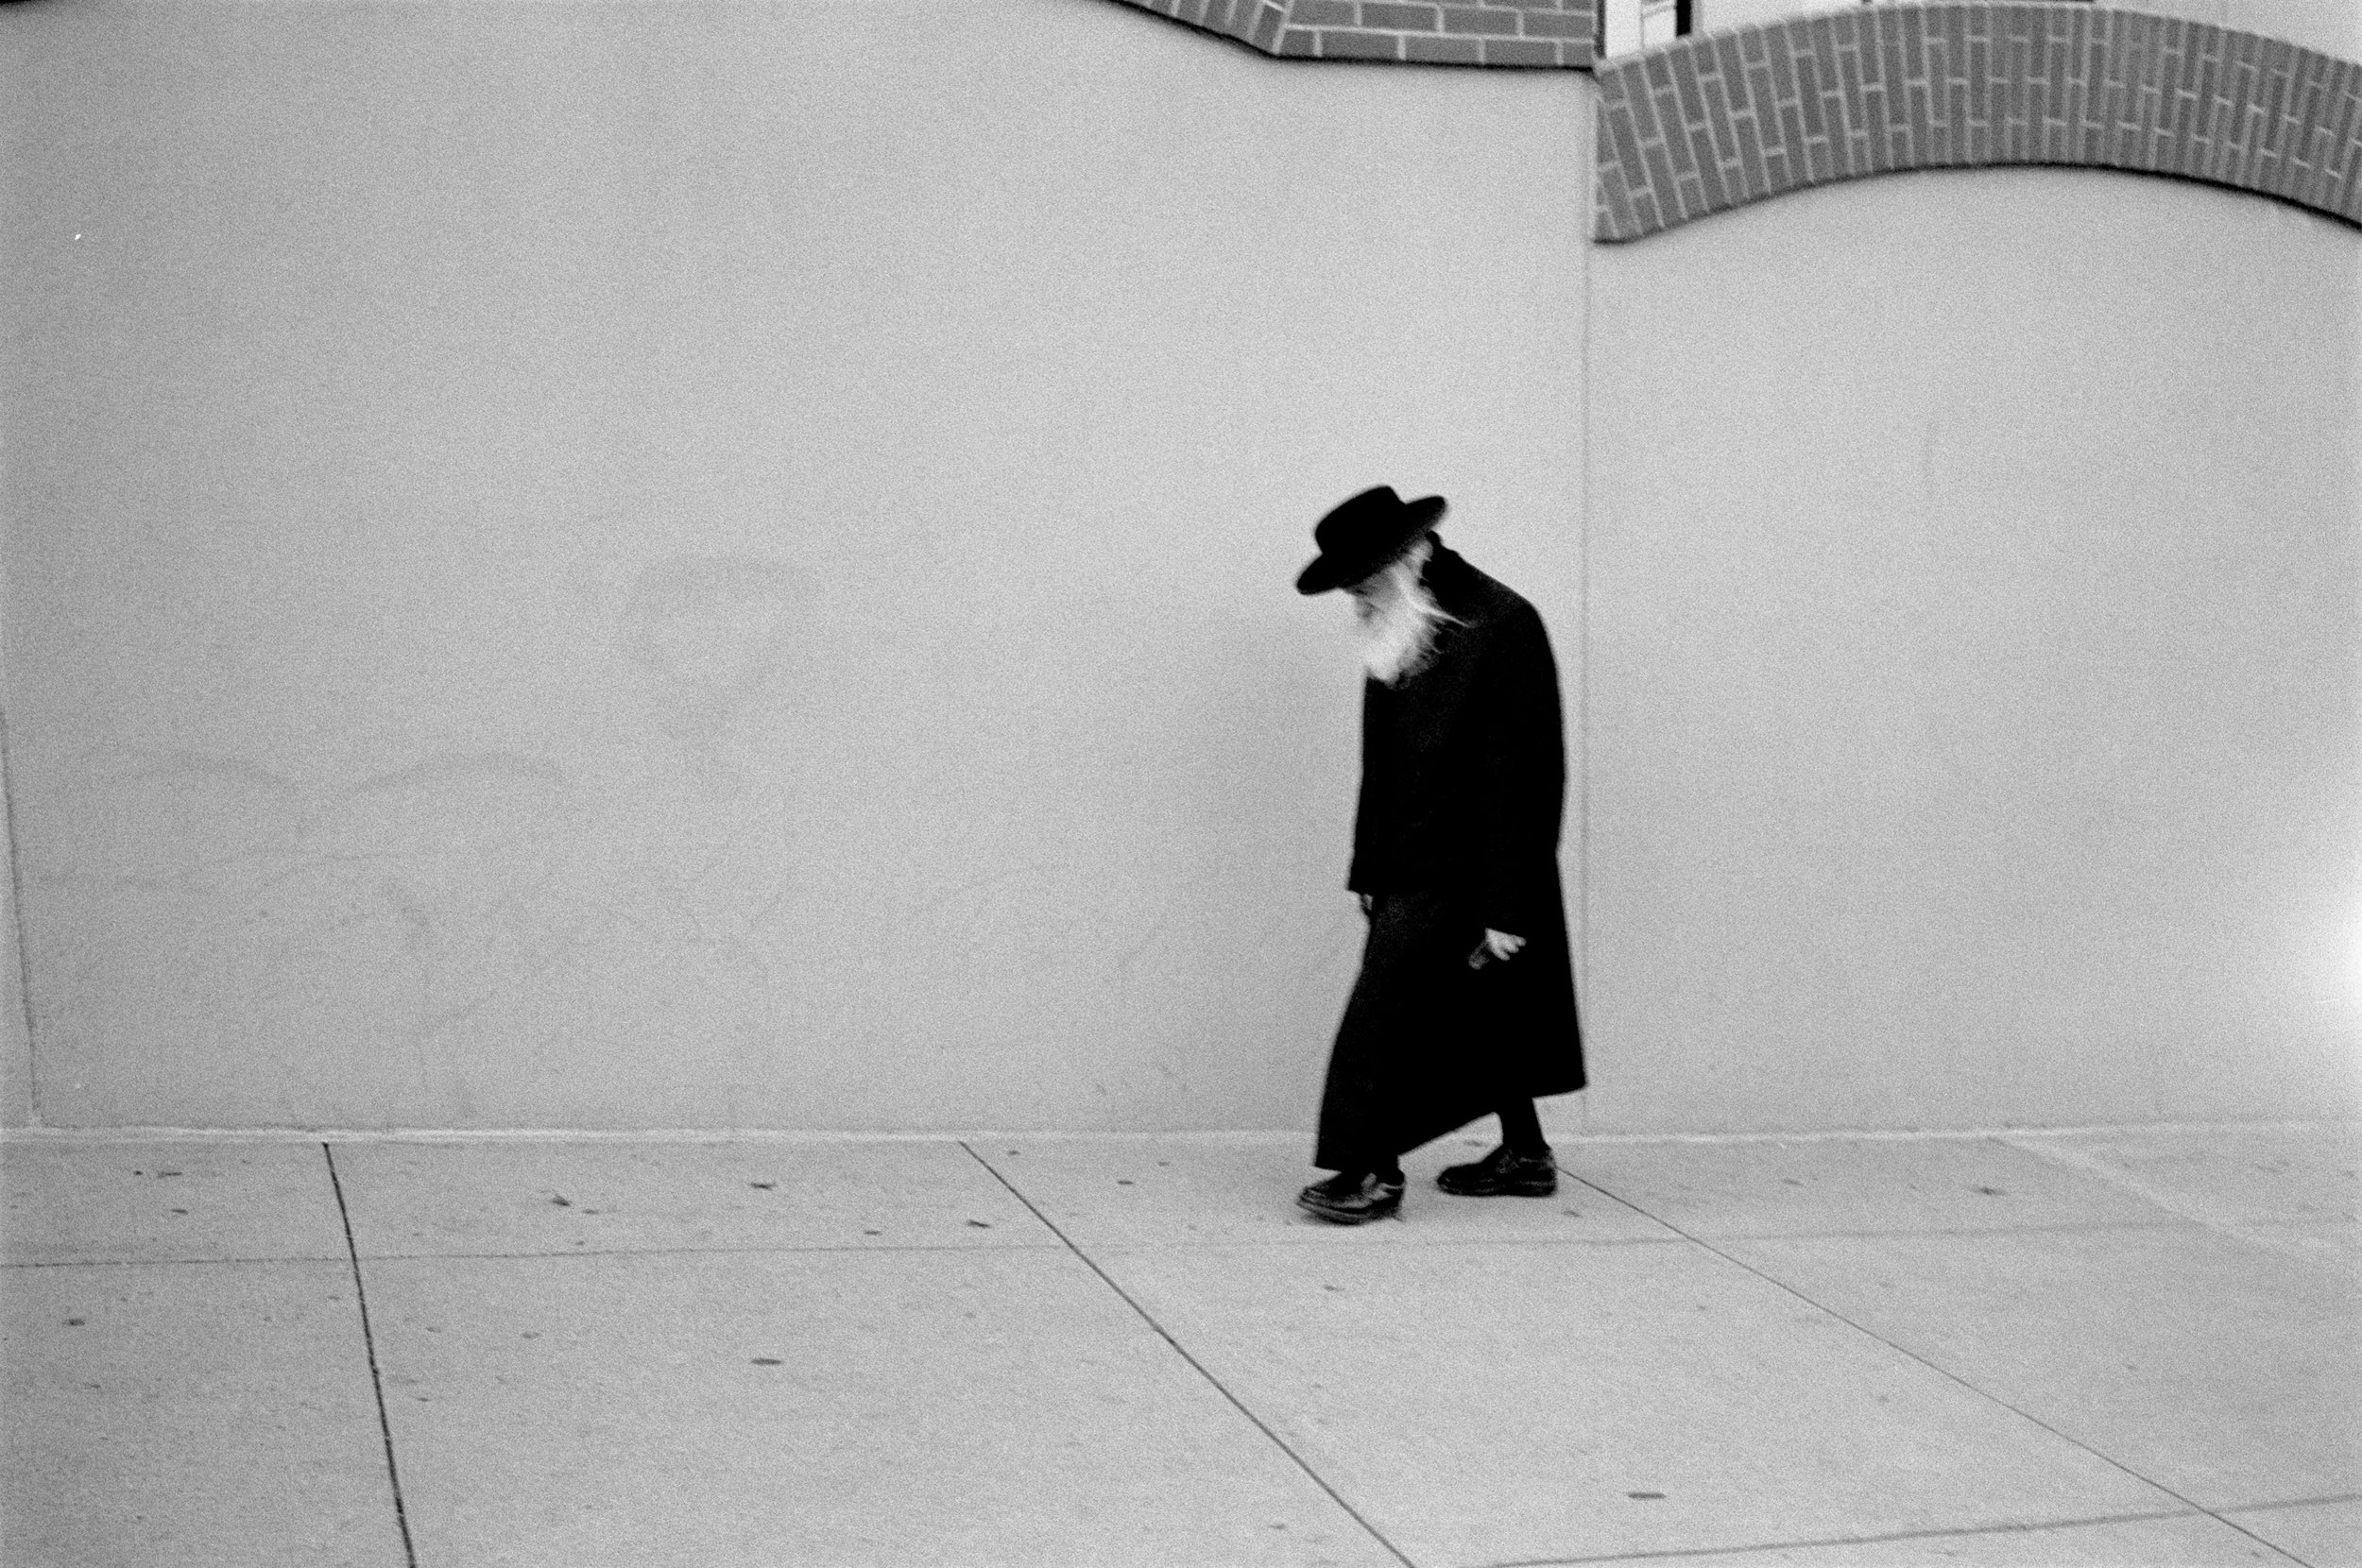 New_York_City_35mm_Scan.jpg